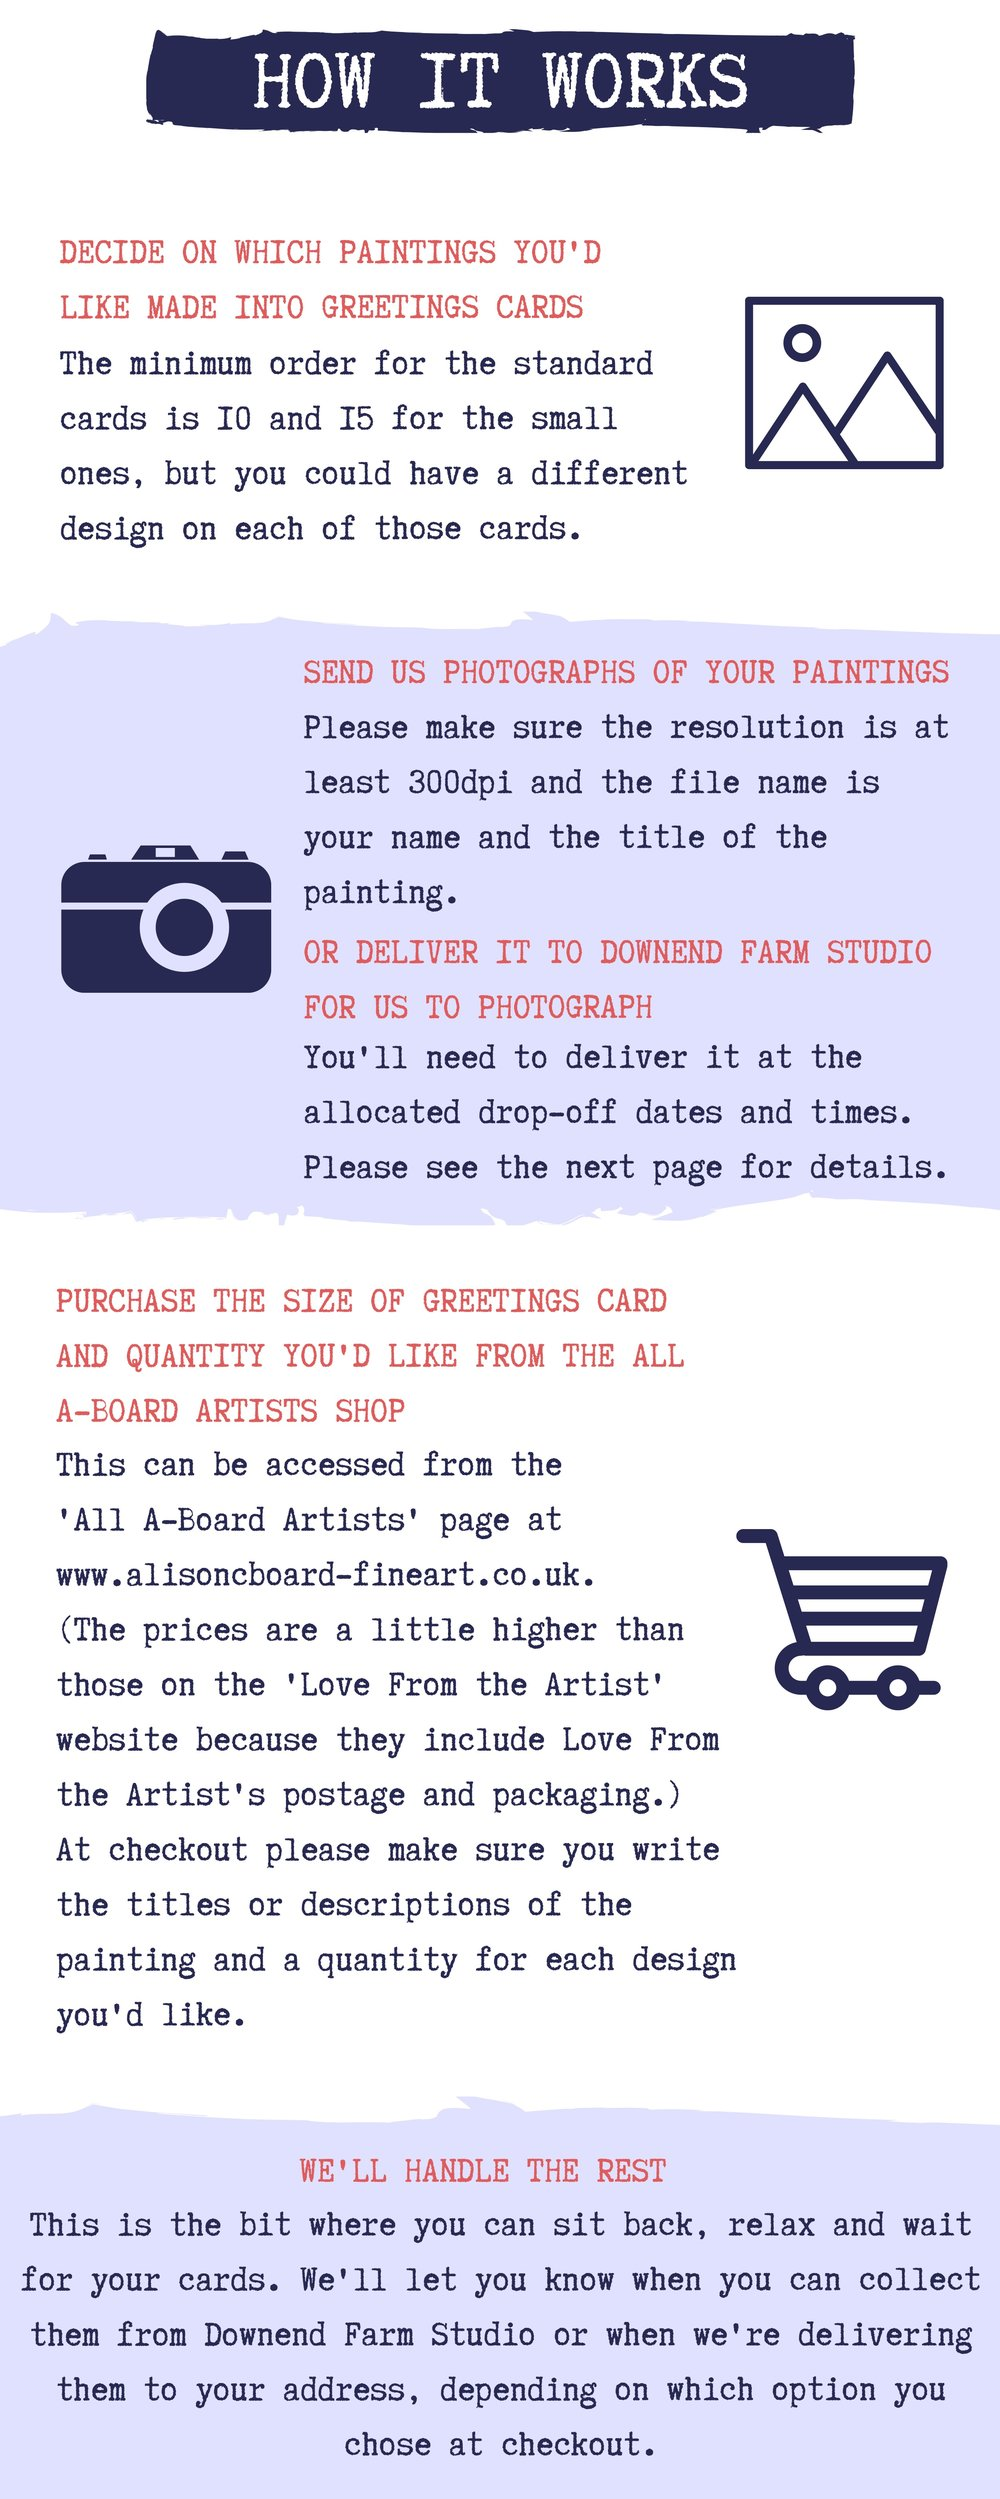 THE ALL A-BAORDS ARTISTS GUIDE TO PRINTING CARDS2 (1).jpg